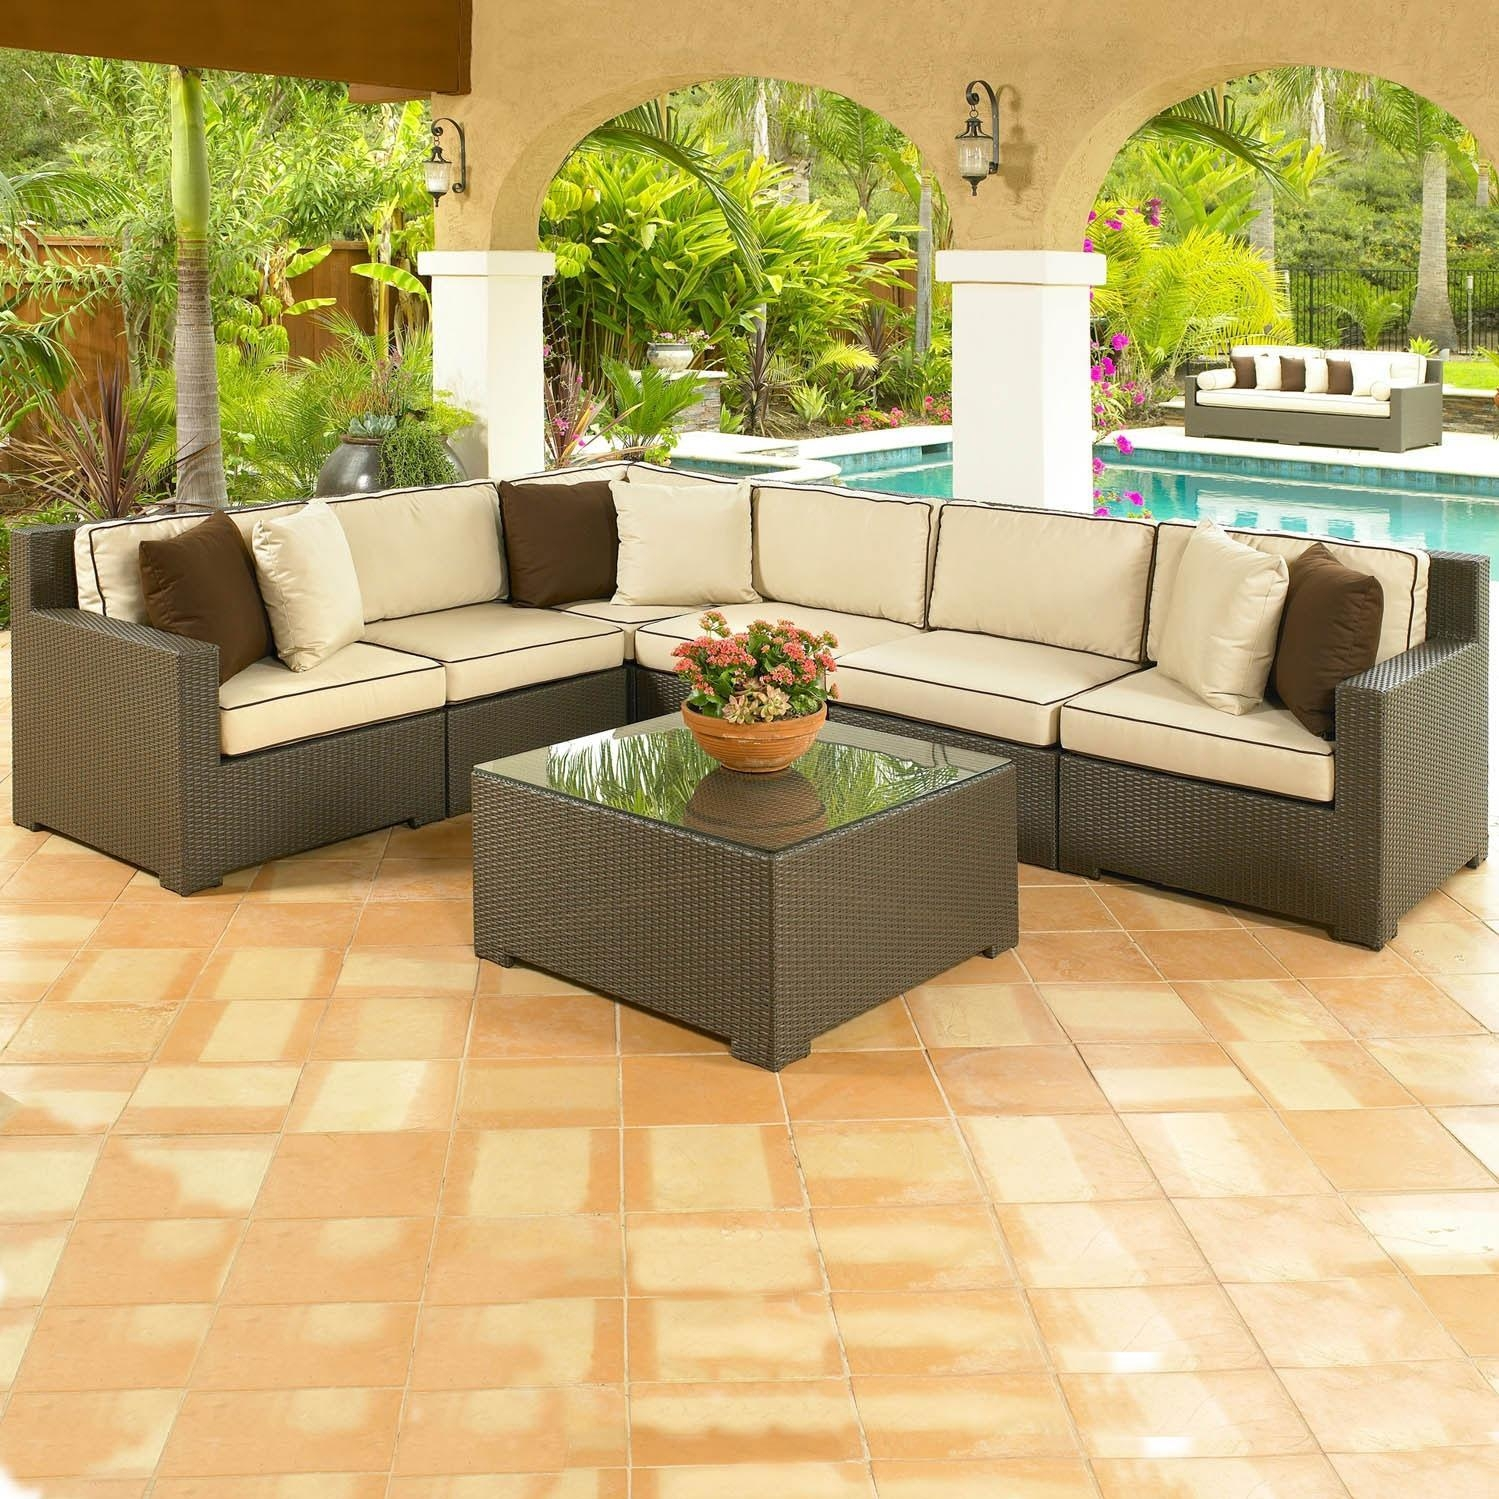 Outdoor Furniture Affordable: 15+ Choices Of Cheap Outdoor Sectionals